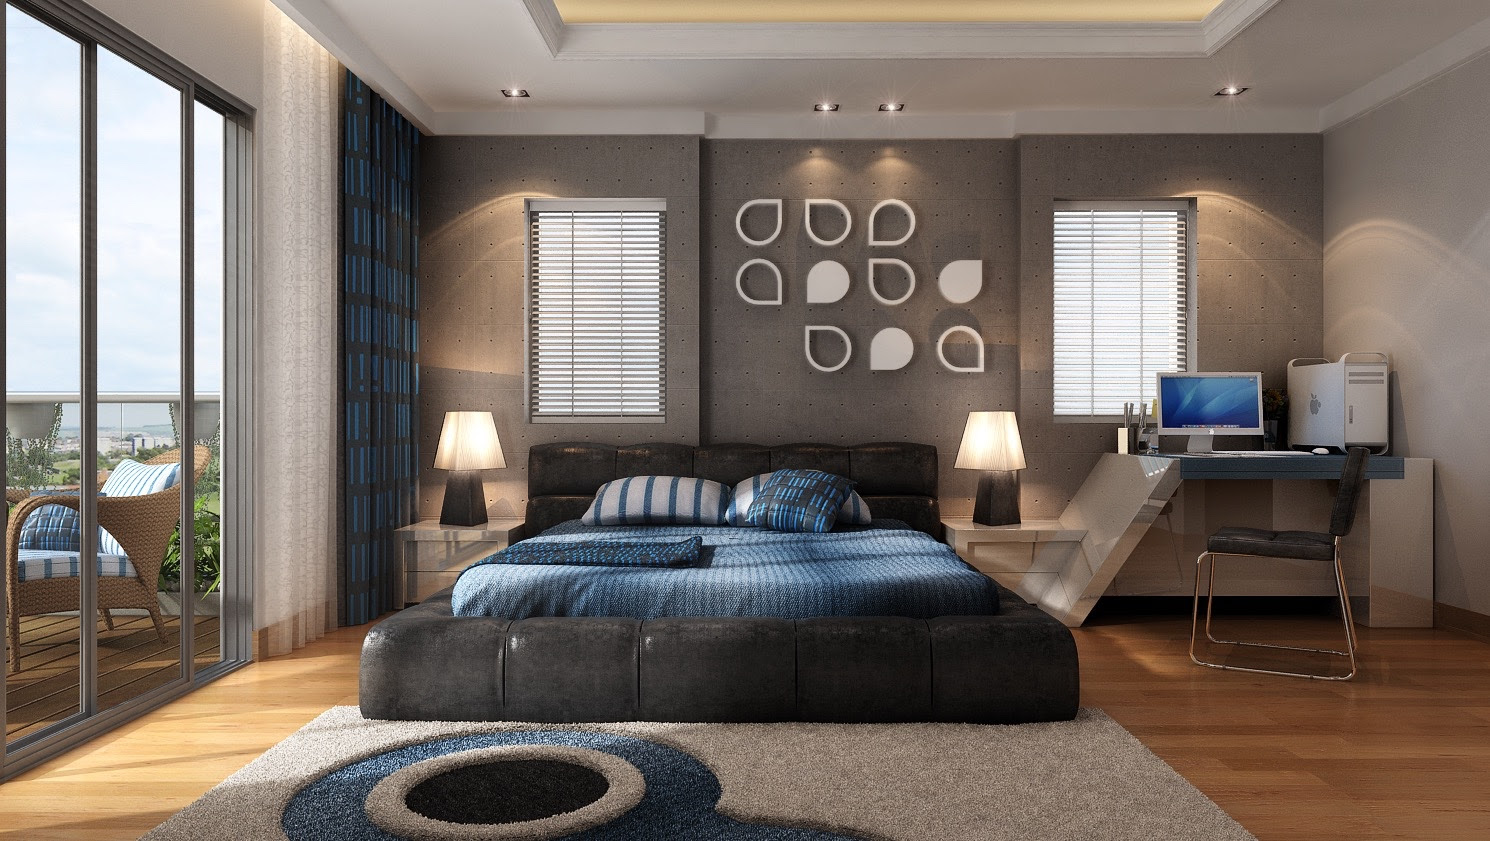 21 Cool iBedroomsi for Clean and iSimplei iDesigni Inspiration